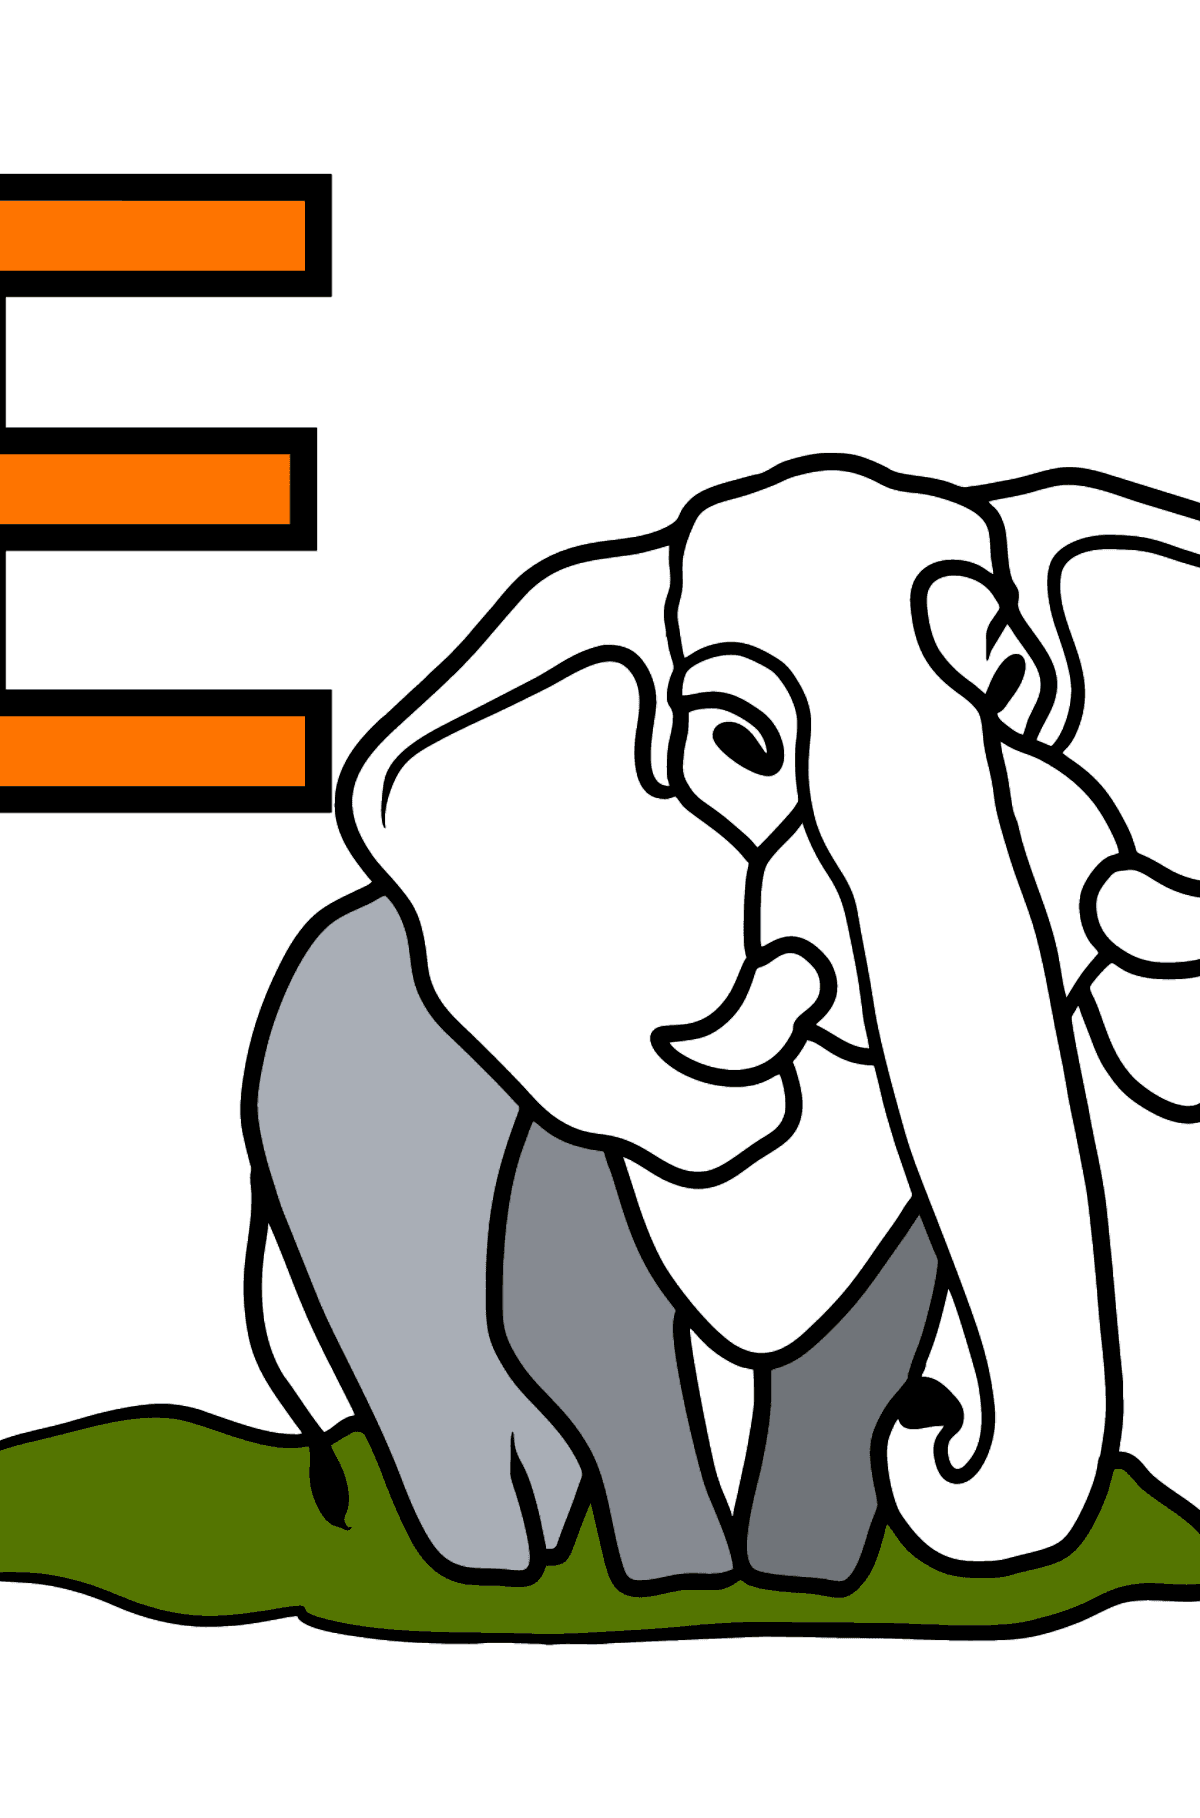 French Letter E coloring pages - ÉLÉPHANT - Coloring Pages for Kids